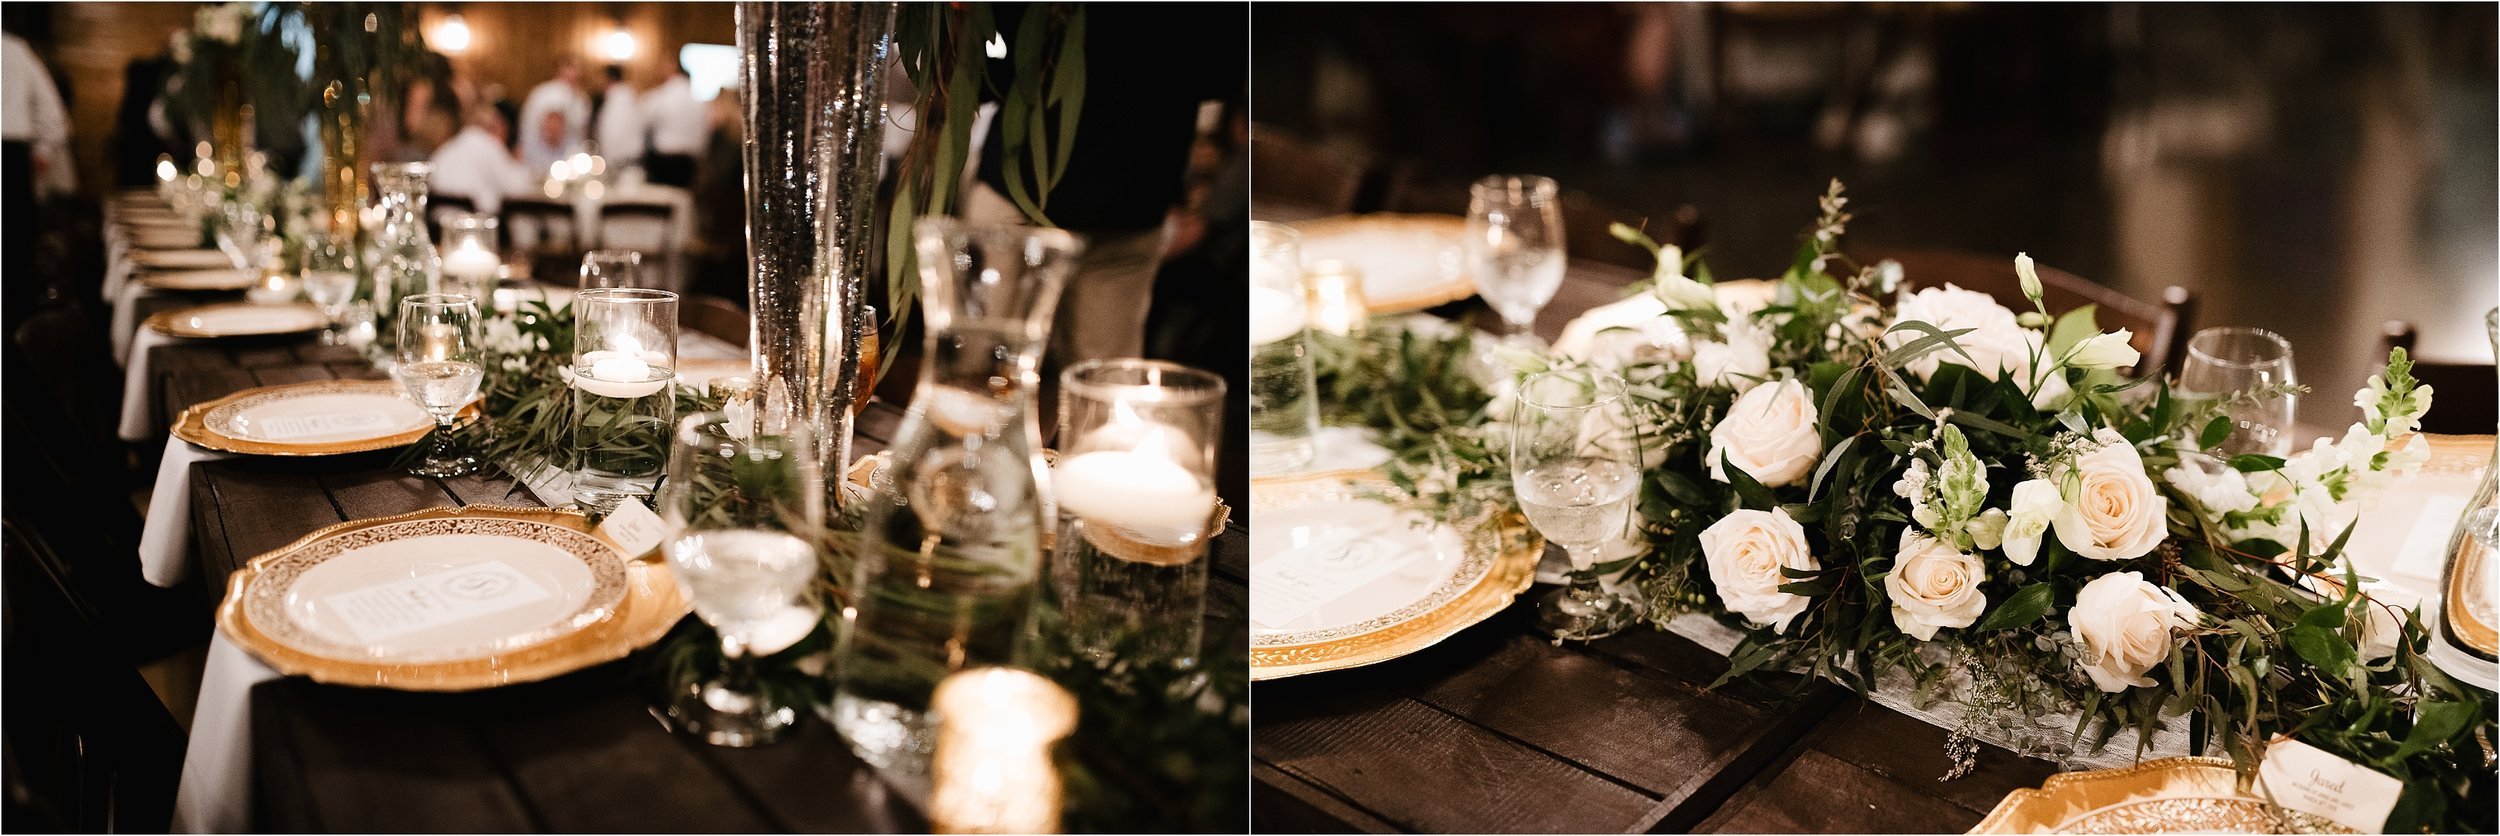 wedding photographer oklahoma reception the springs norman okc reception table settings decor decorations centerpieces florals flowers candles